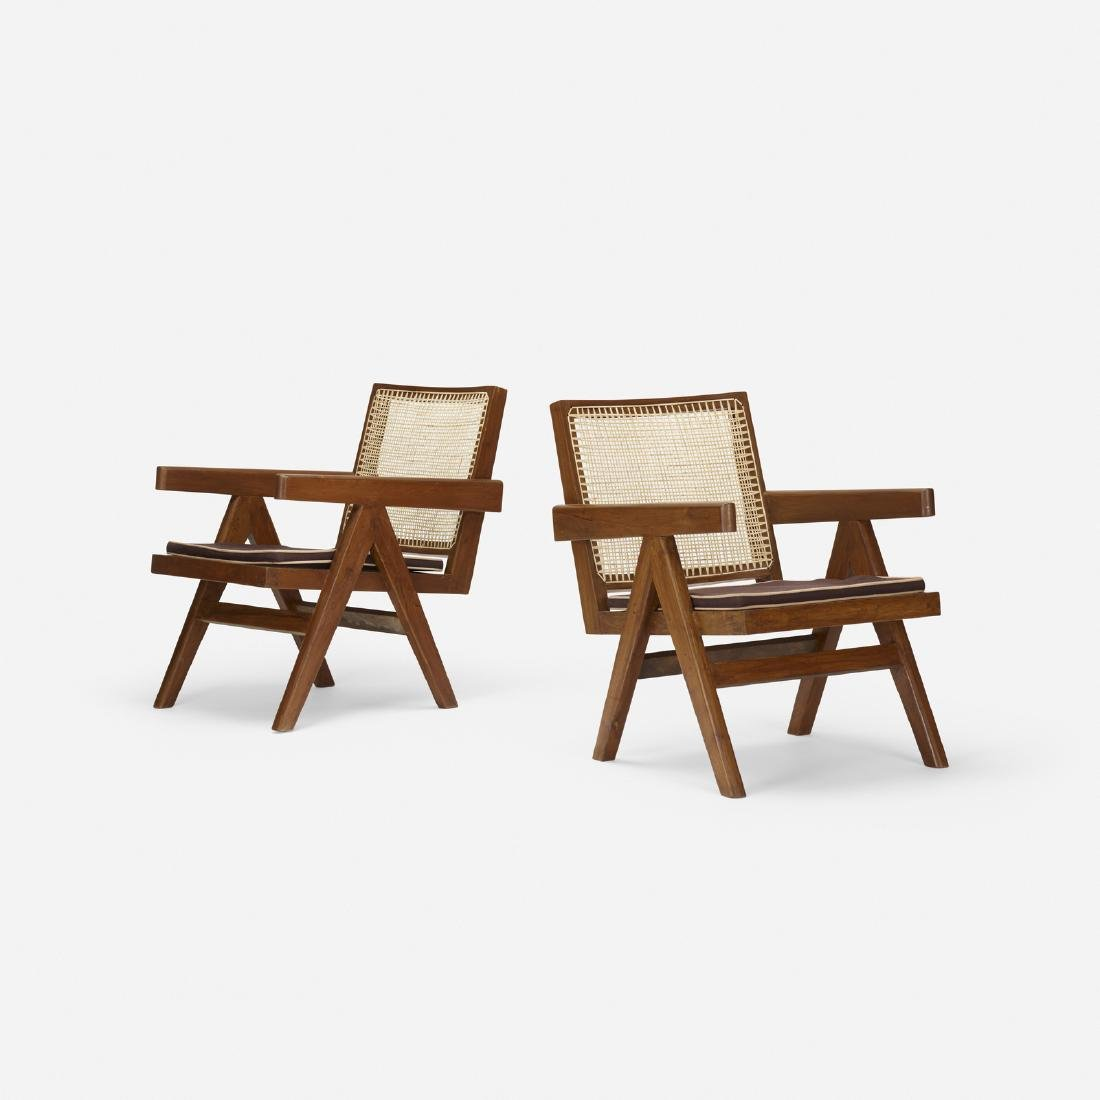 Pierre Jeanneret, Easy armchairs from Chandigarh, pair